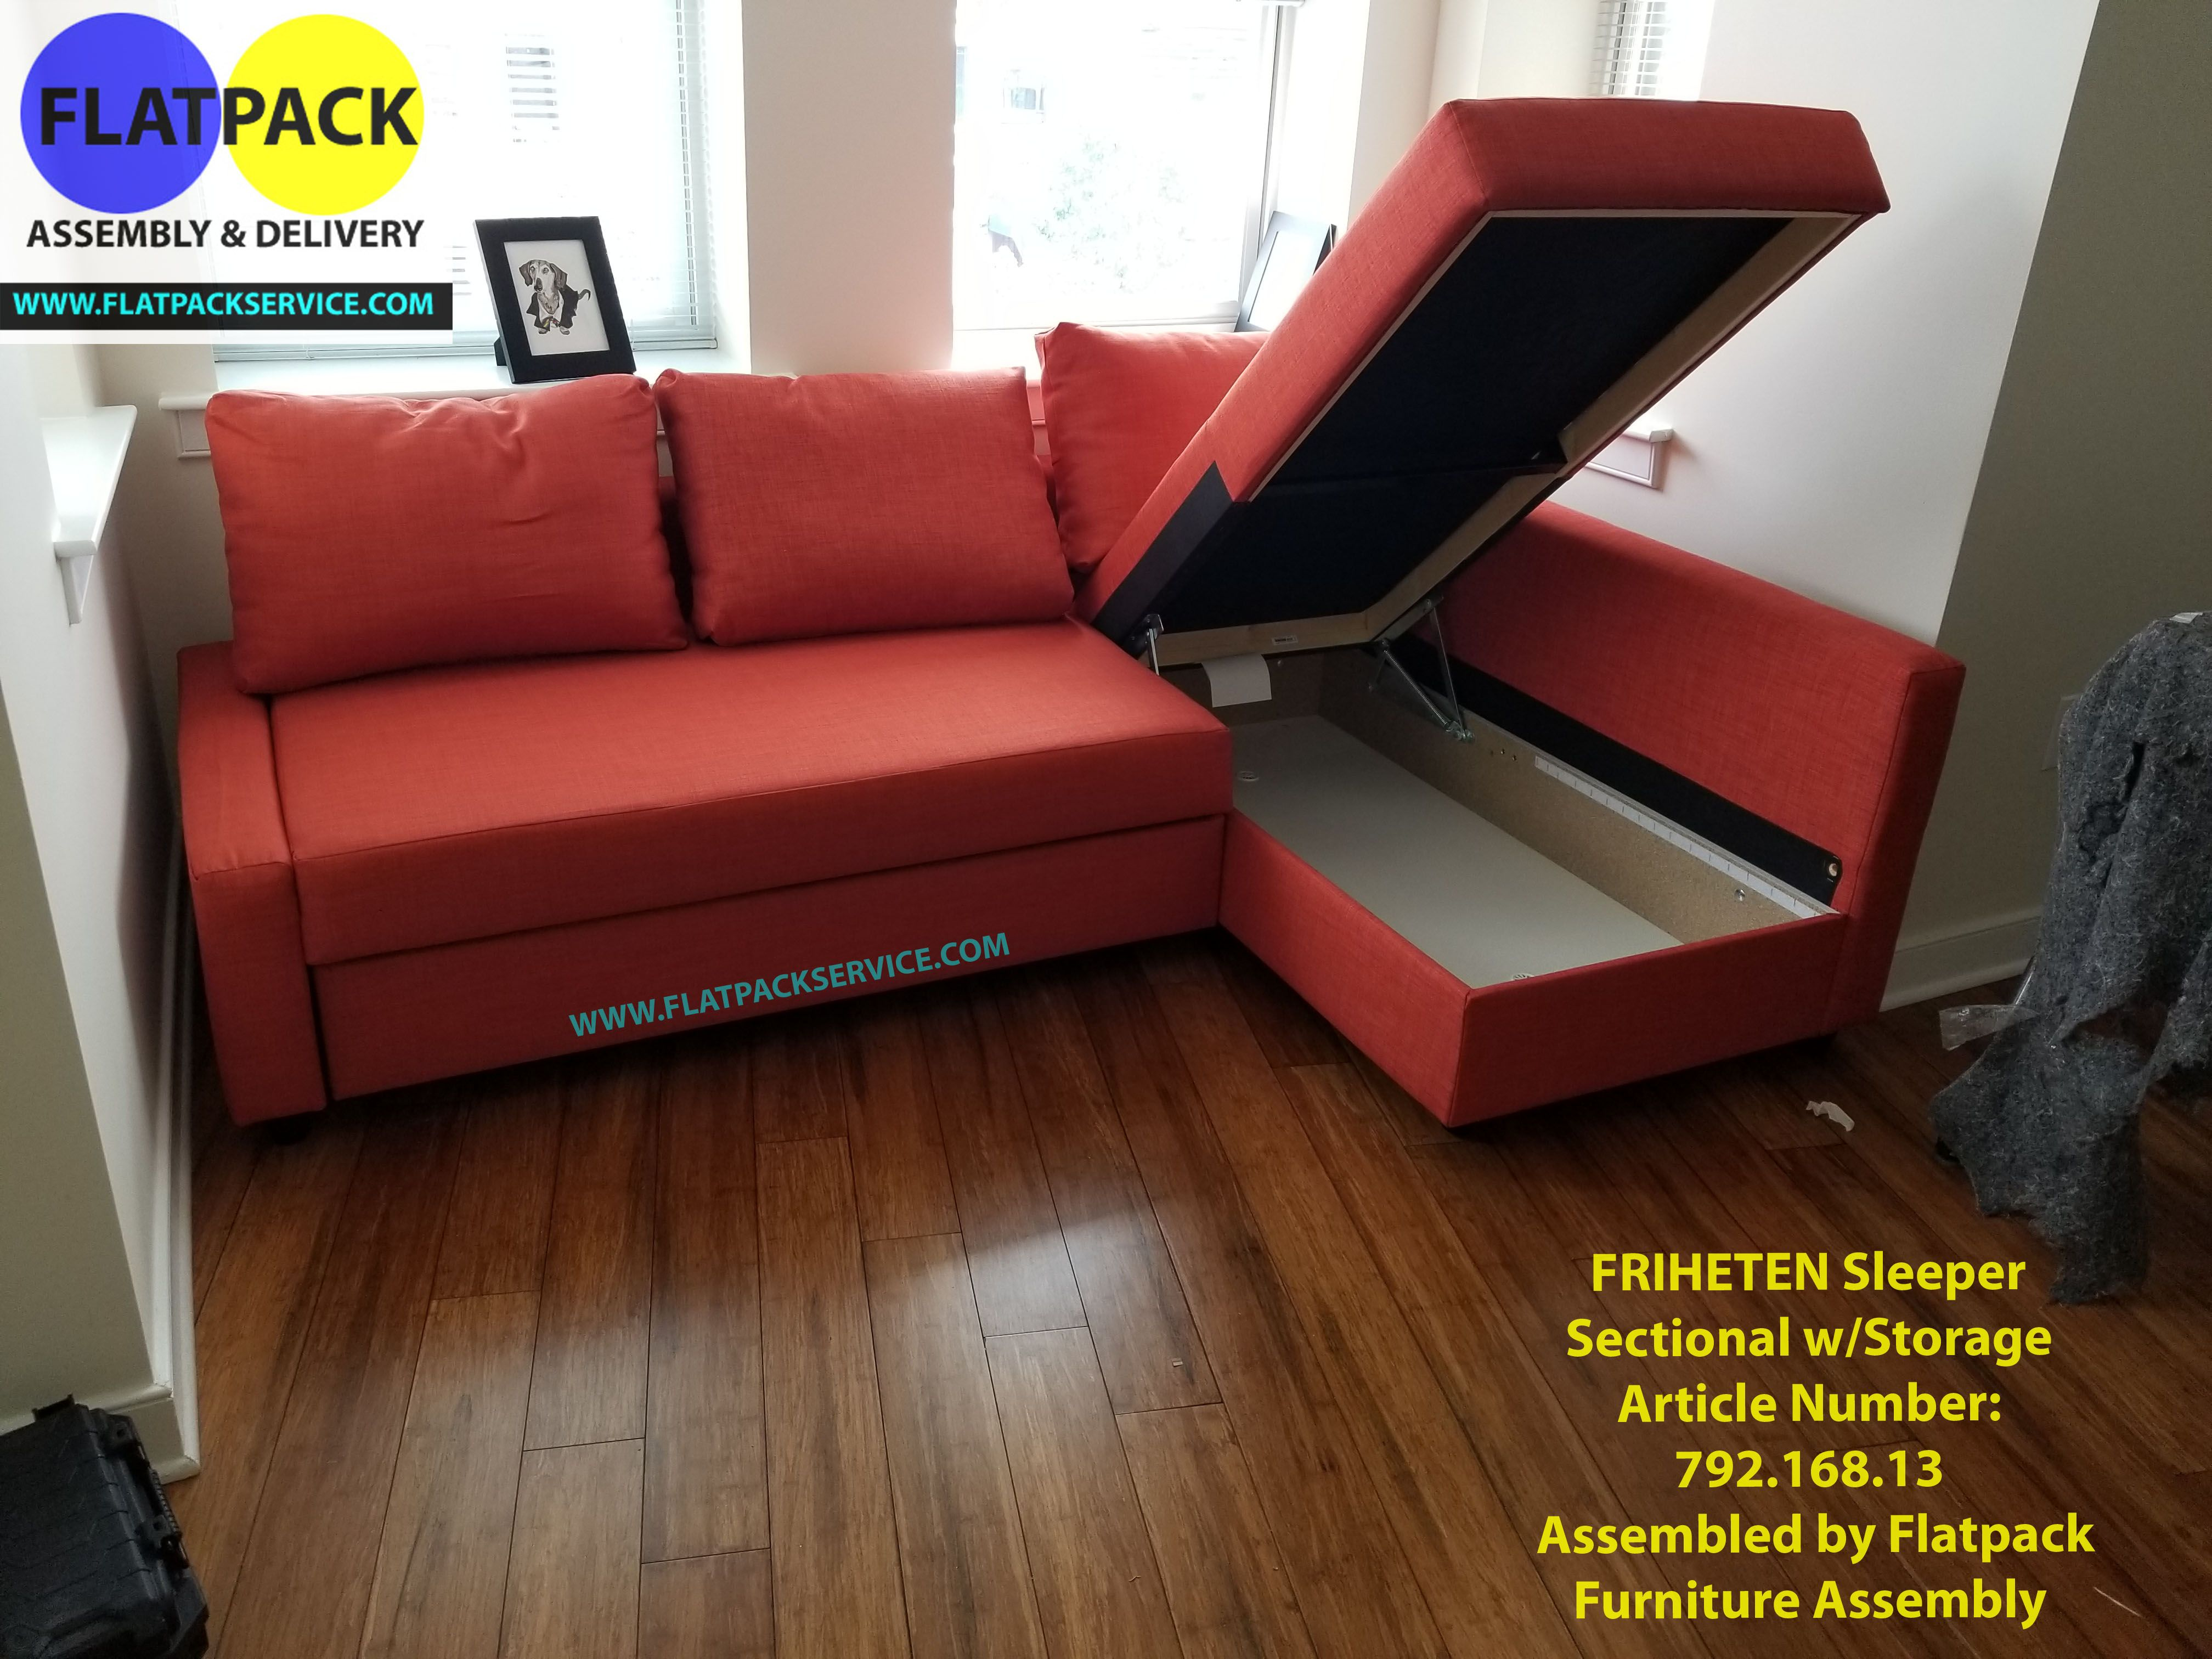 Top Furniture Assembly Services Near Baltimore Md 21201 Flatpack